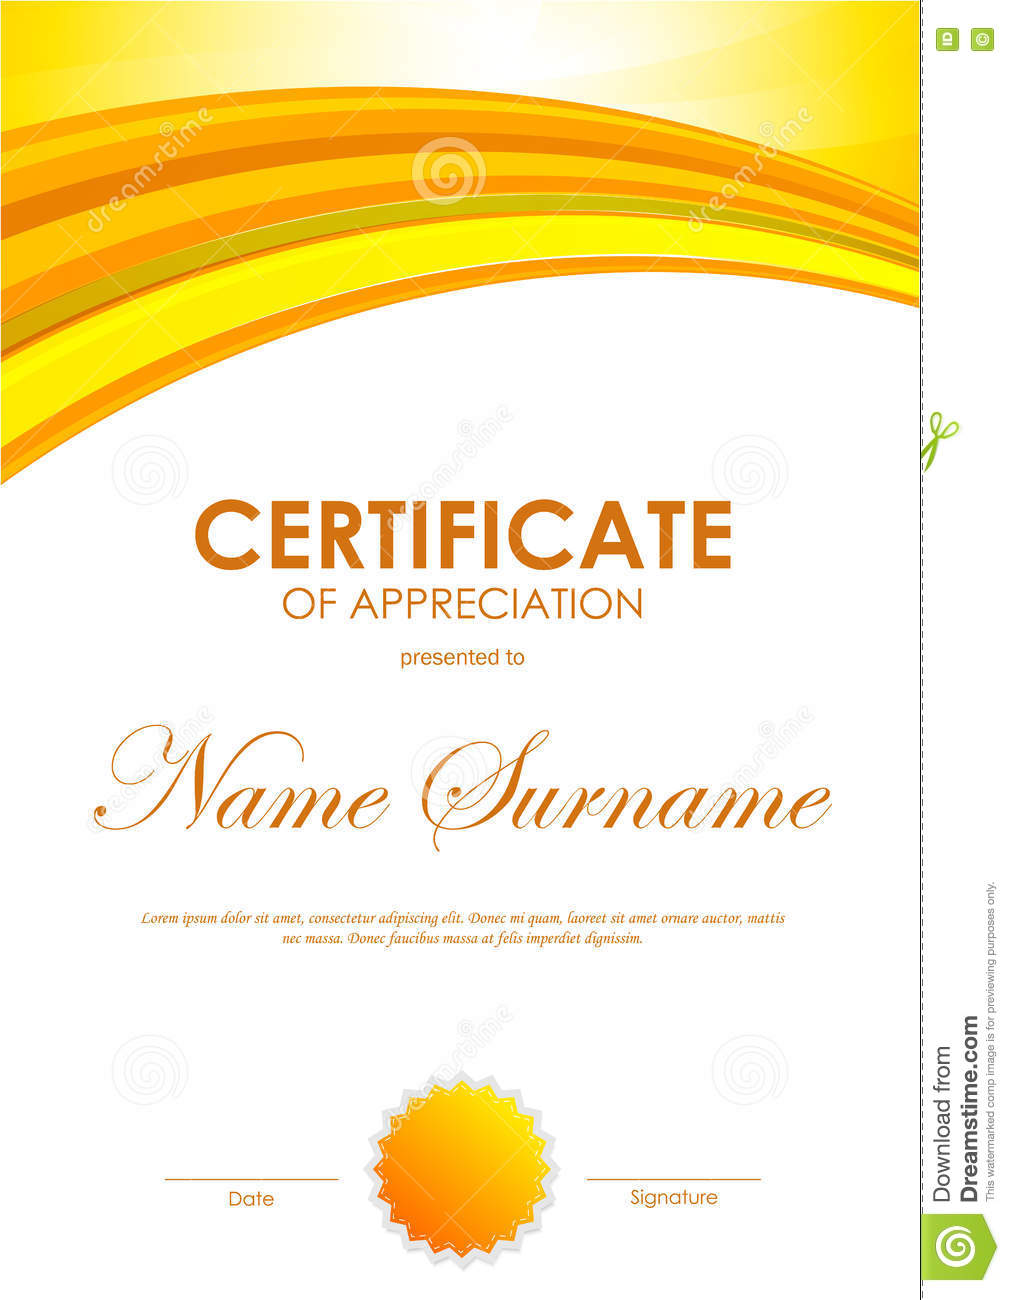 Certificate of appreciation templates free download gallery certificate of appreciation template stock vector illustration certificate of appreciation template royalty free vector alramifo gallery yadclub Image collections